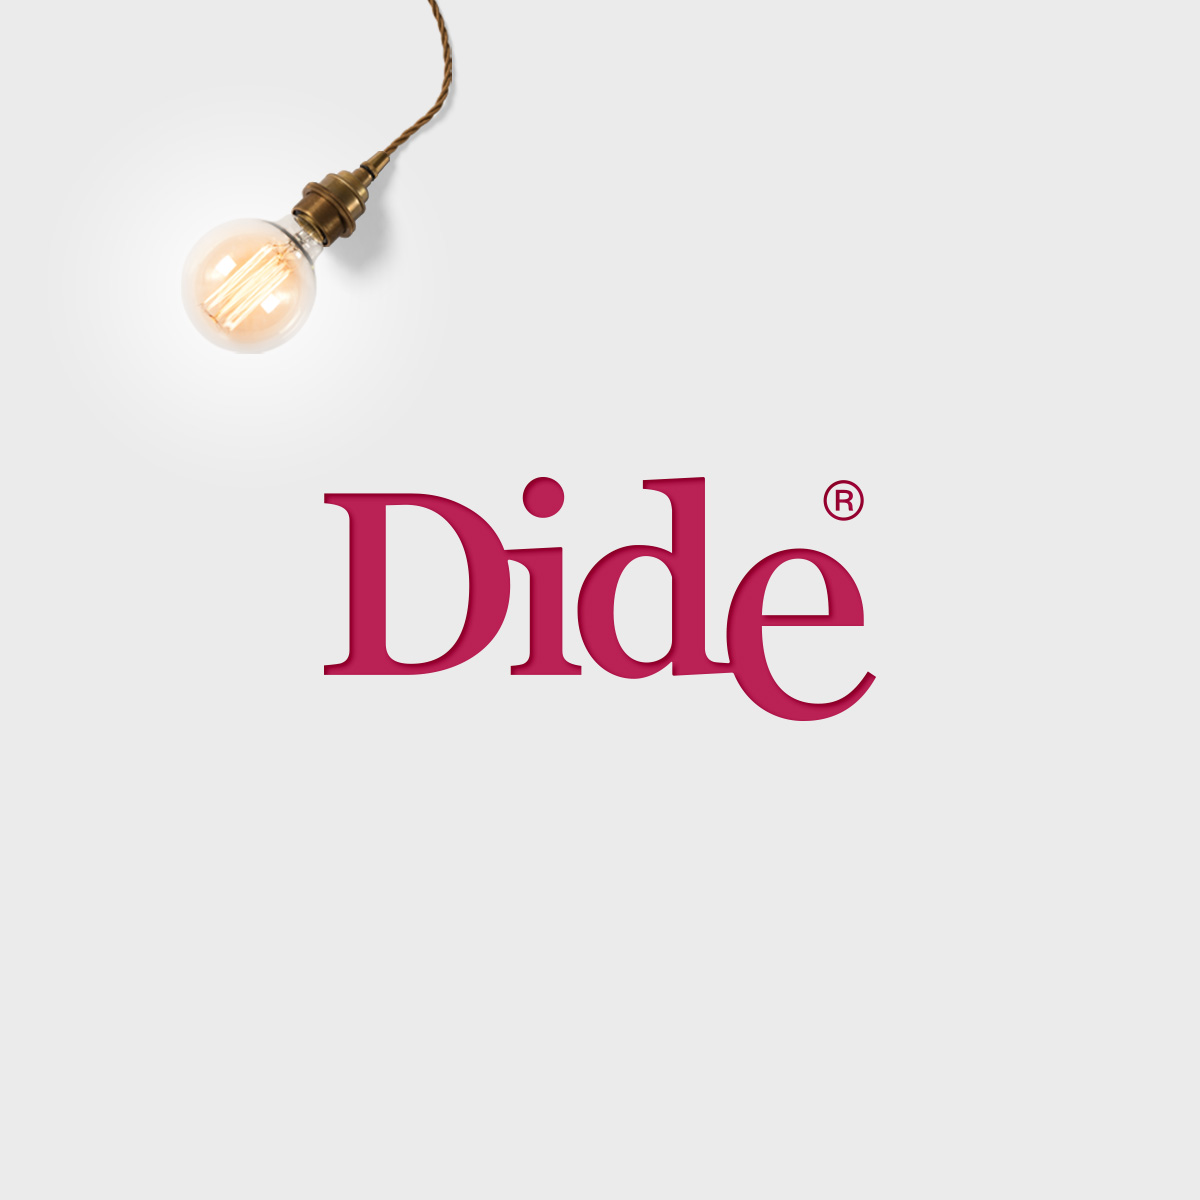 Dide. Logo for an interior design store